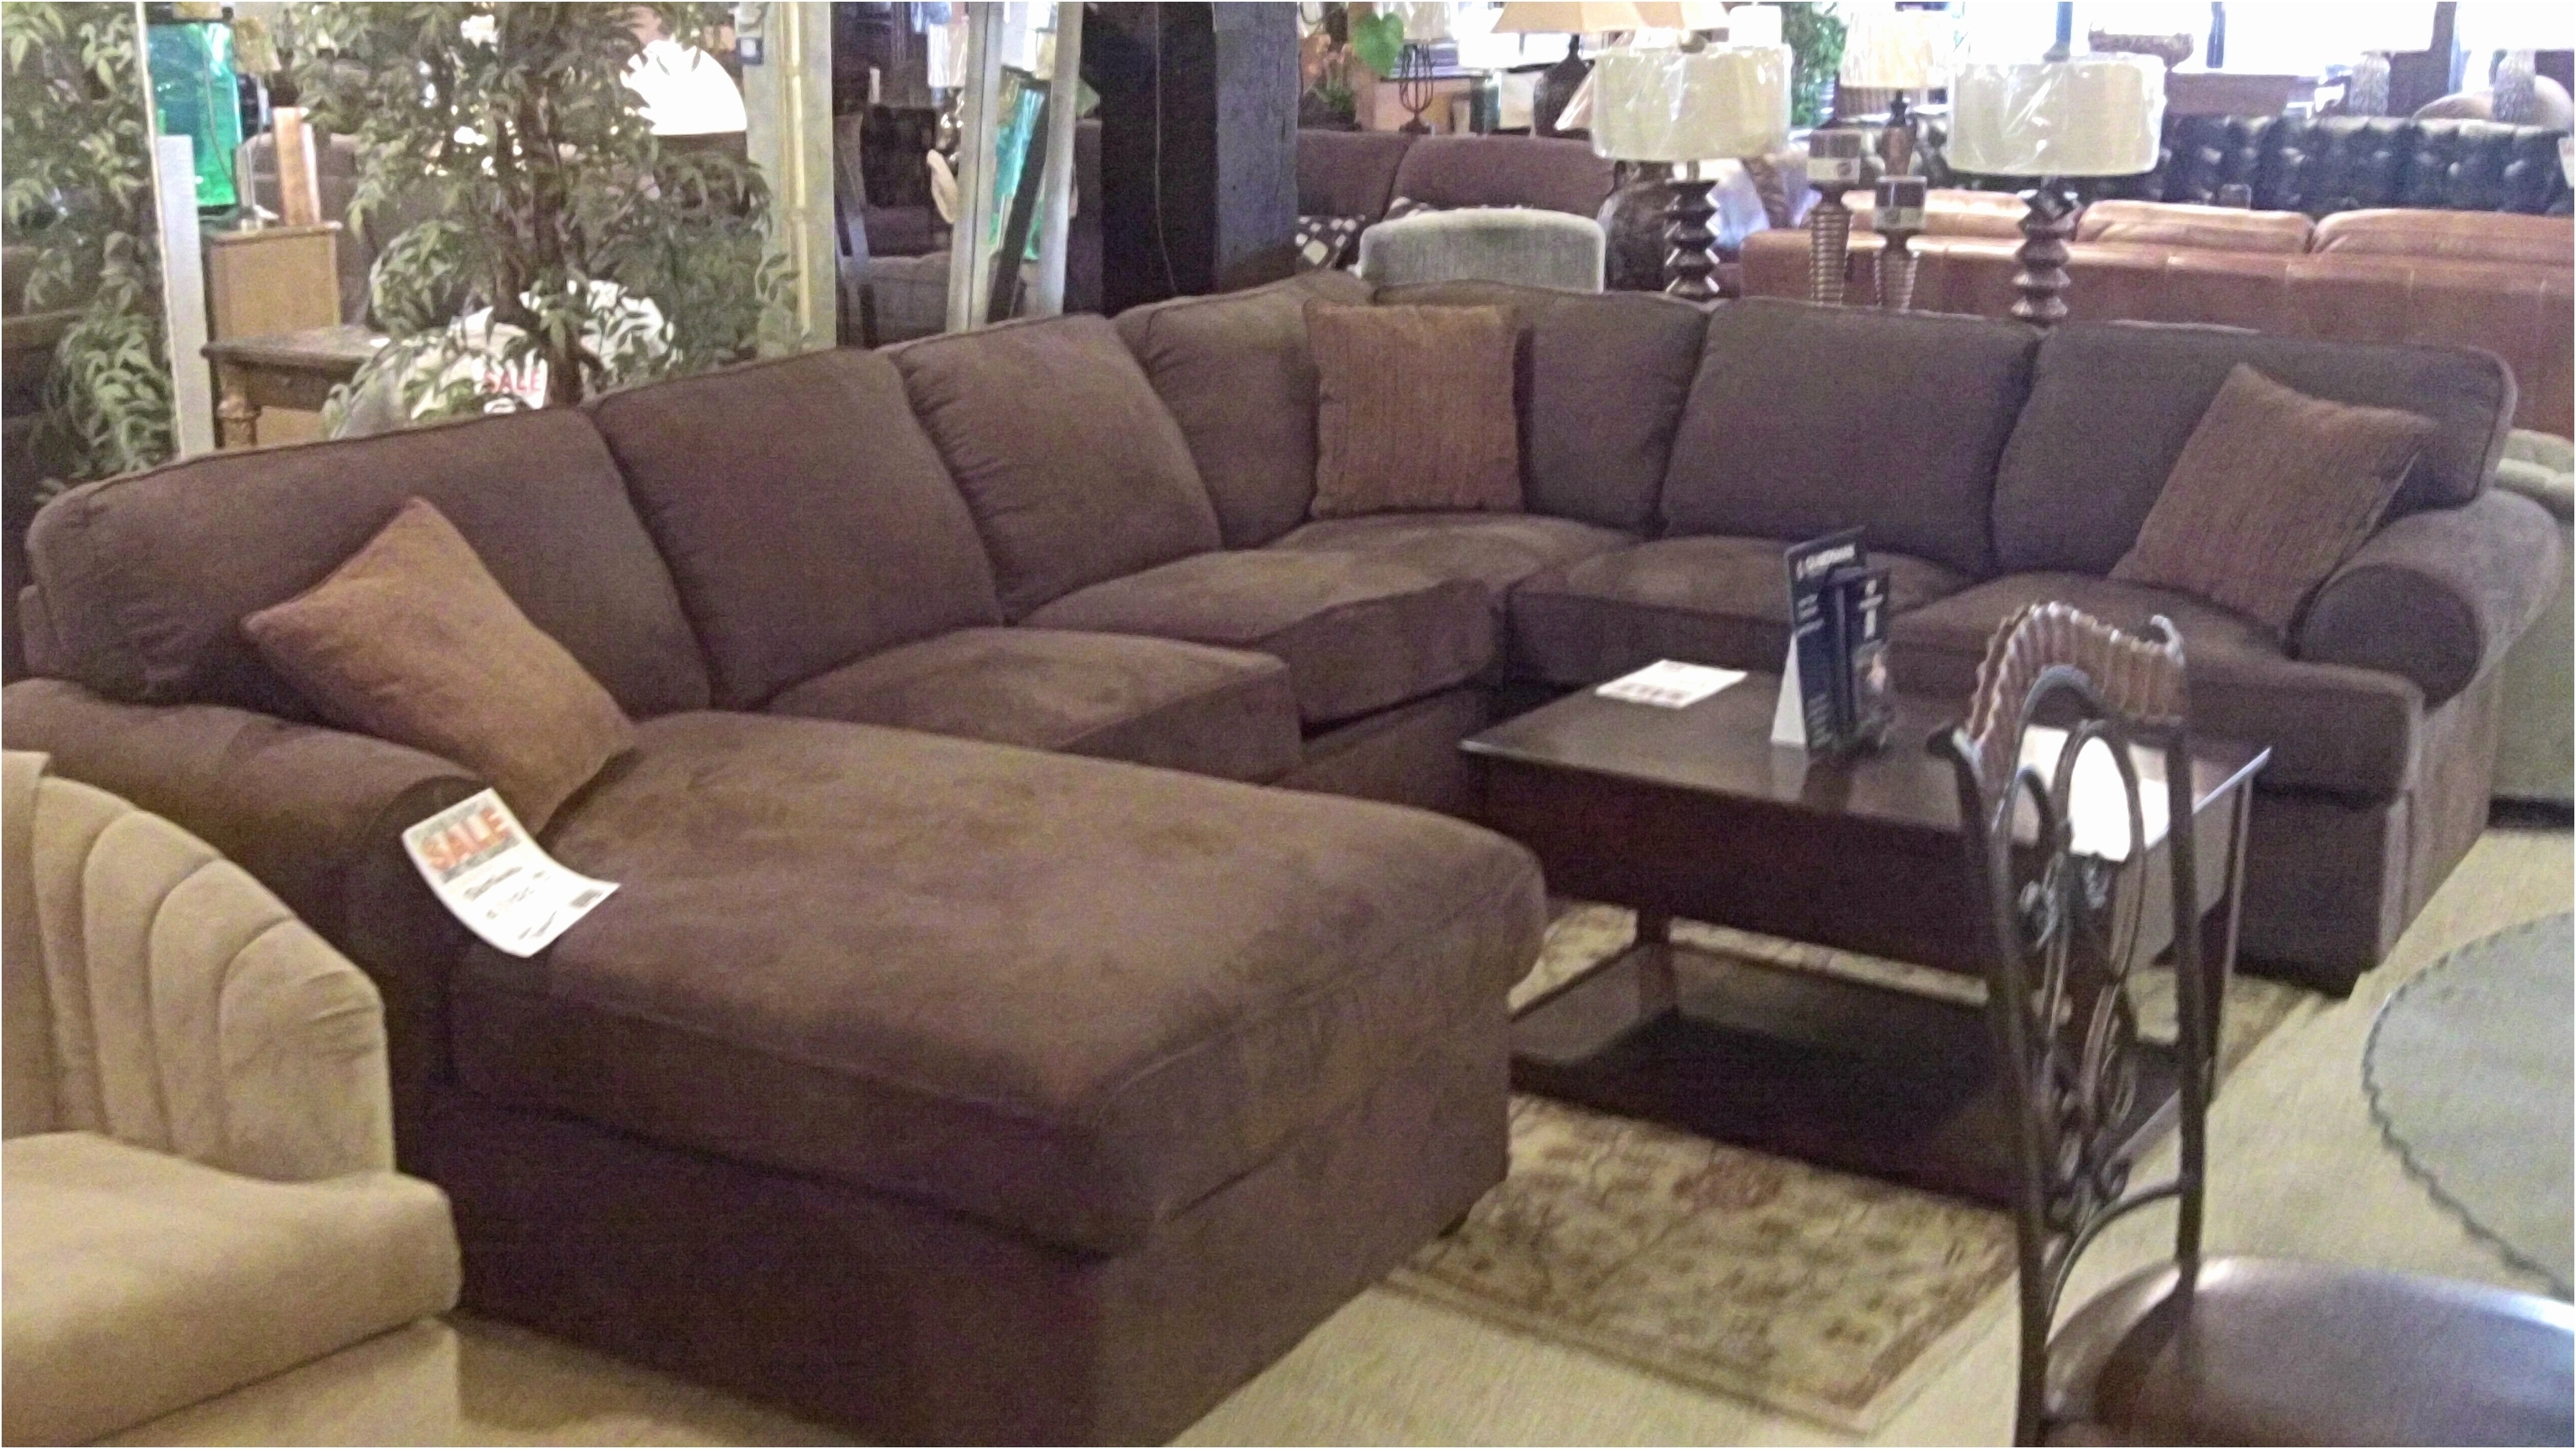 High Quality Sectional Sofas For Recent Inspirational High Quality Sectional Sofa New – Sofa Furnitures (View 8 of 15)